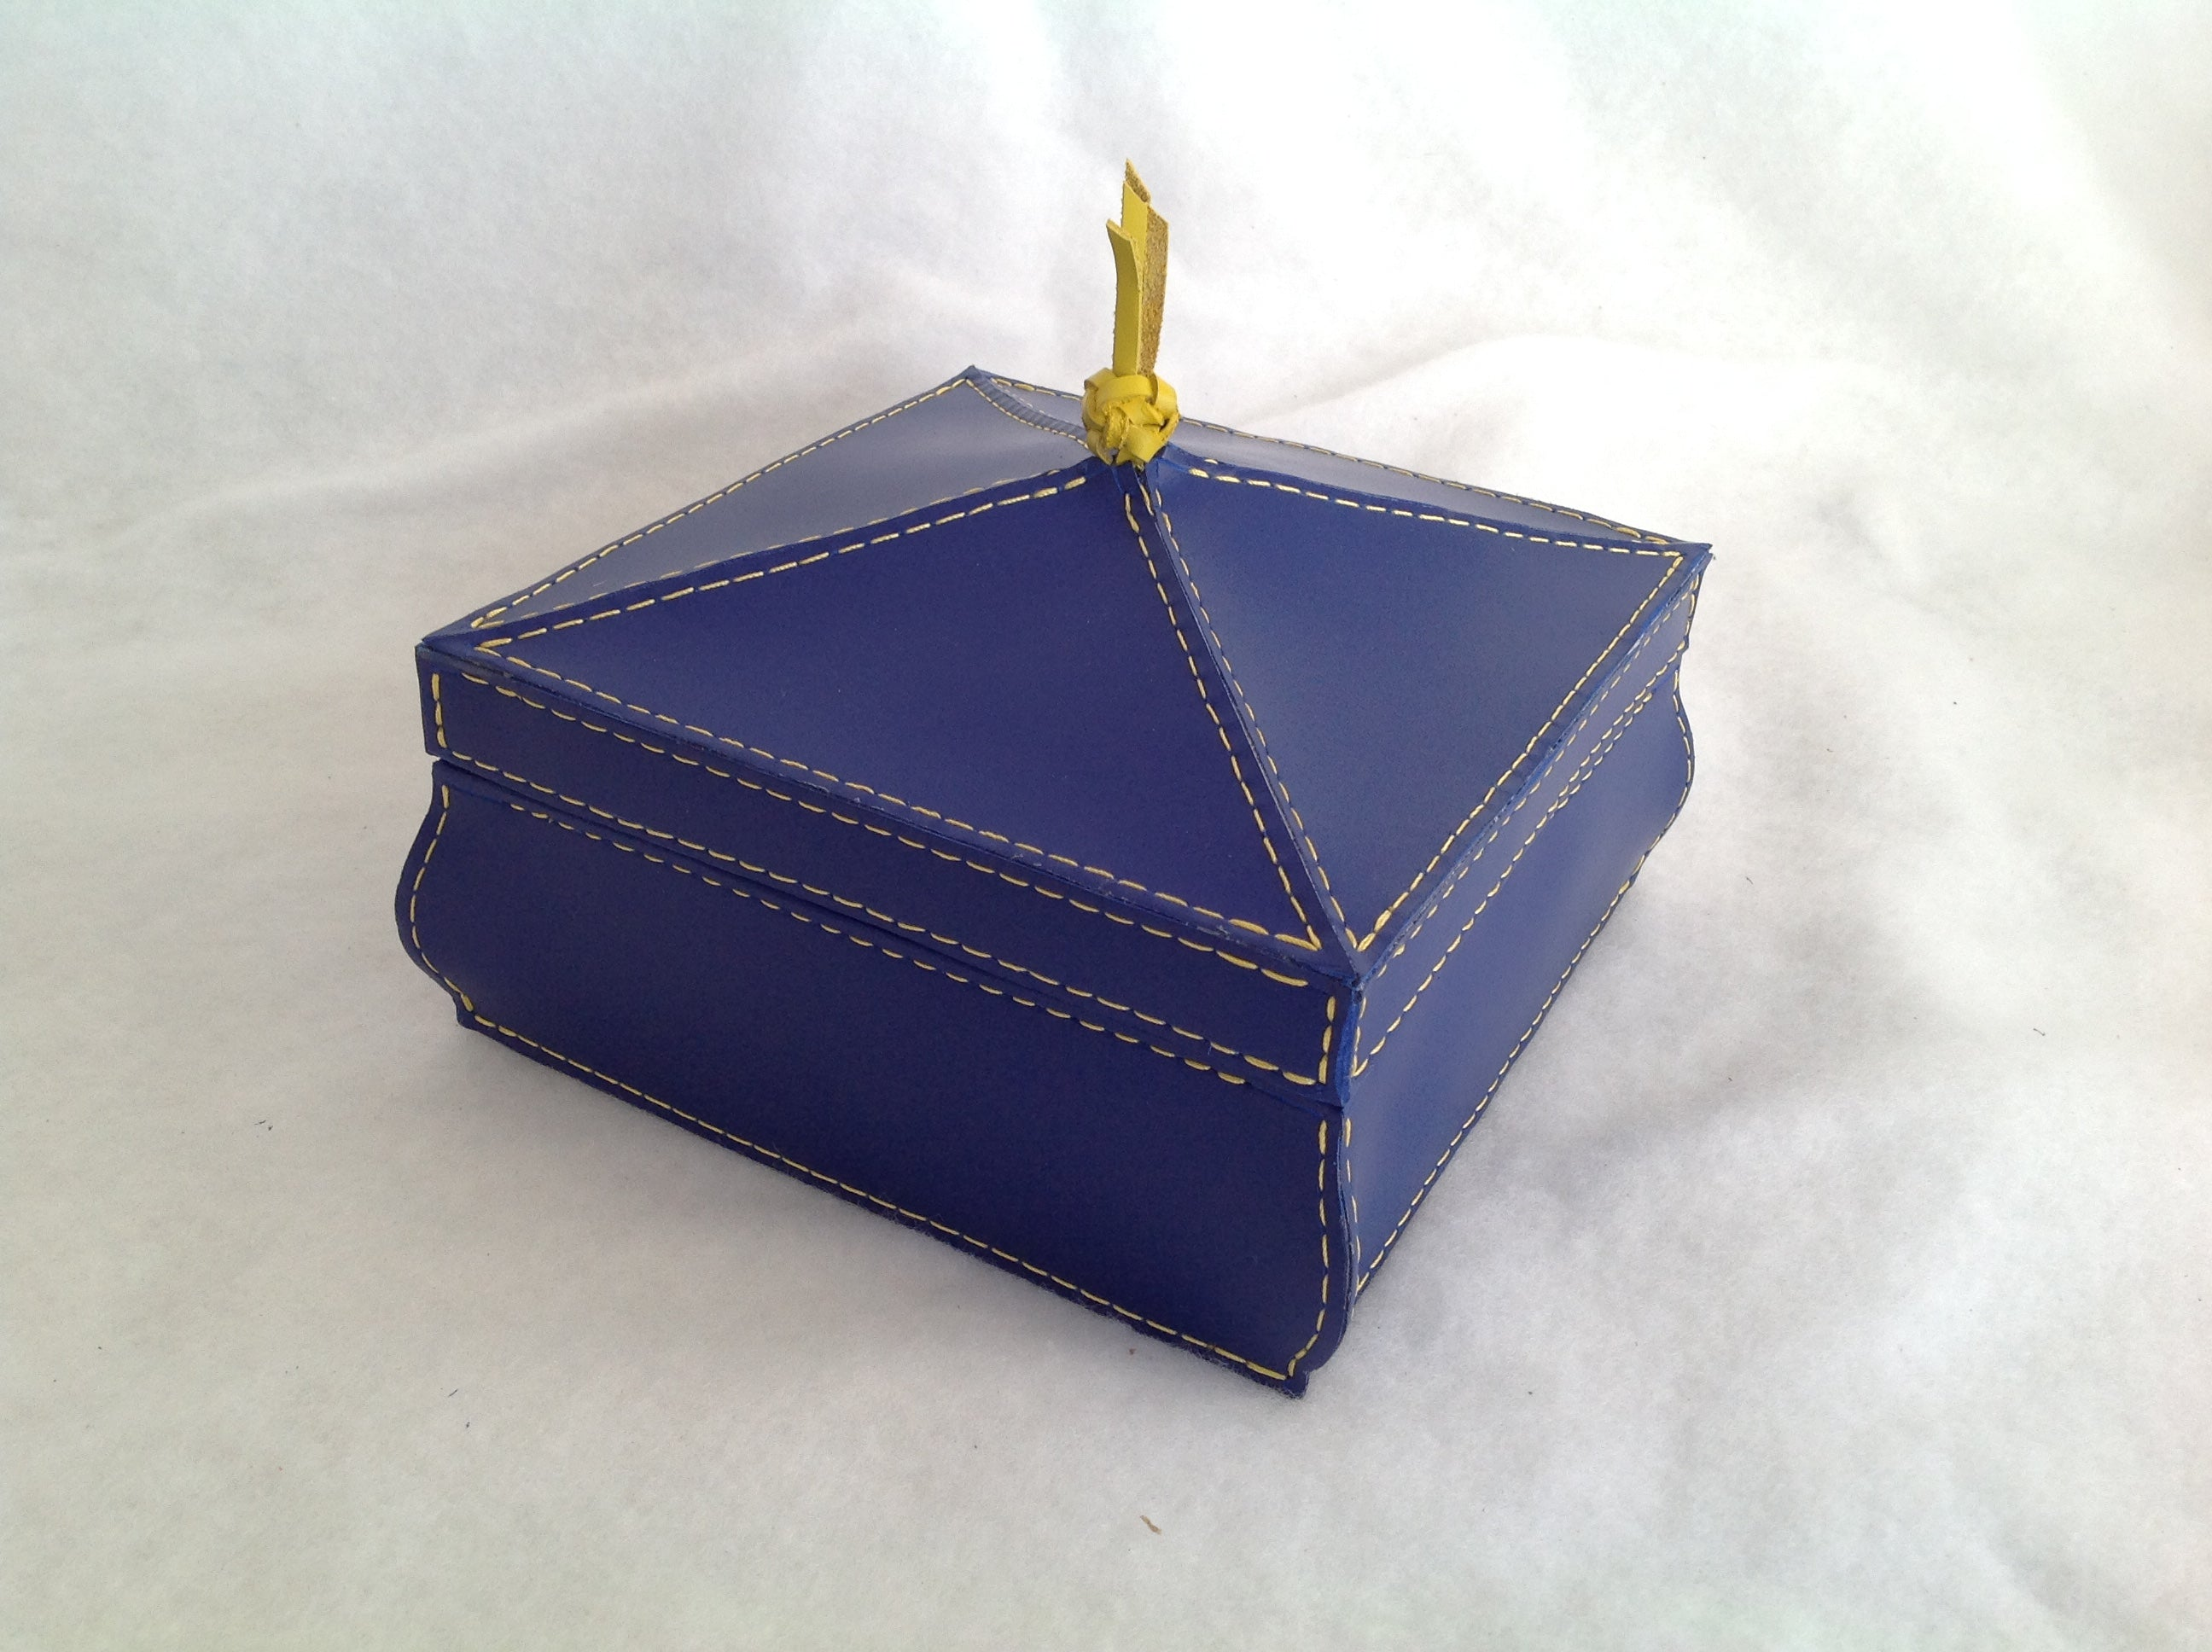 Tool Box in Blue Latigo Leather